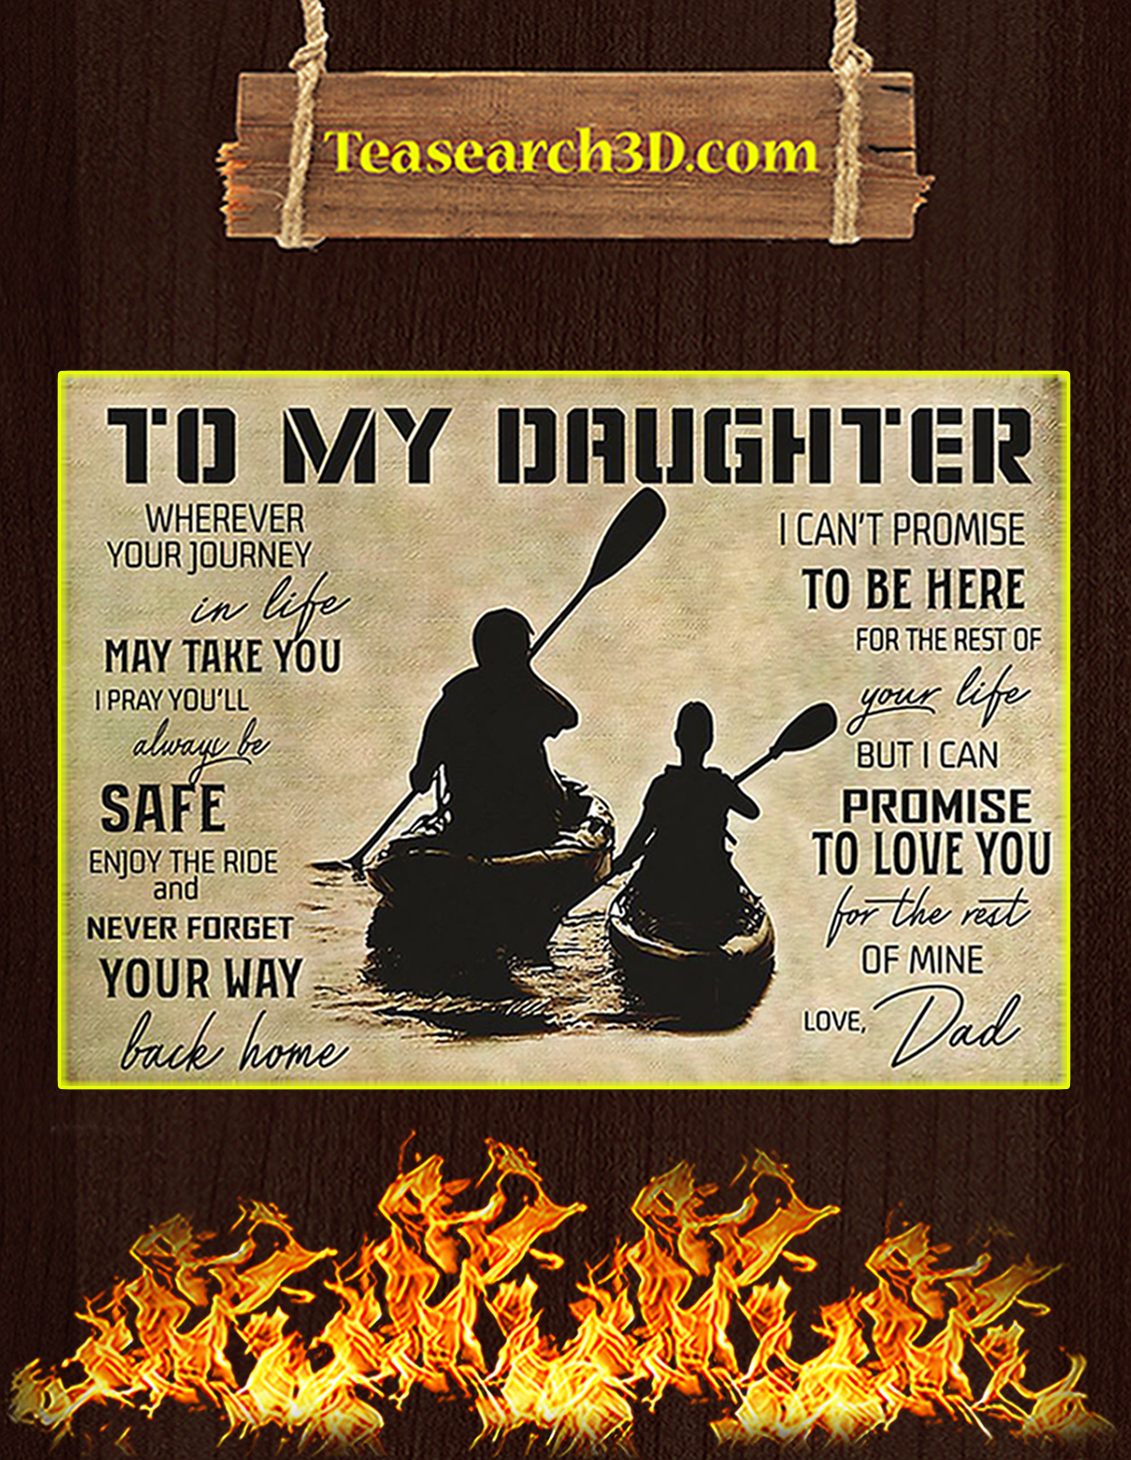 Kayaking to my daughter love dad poster A3